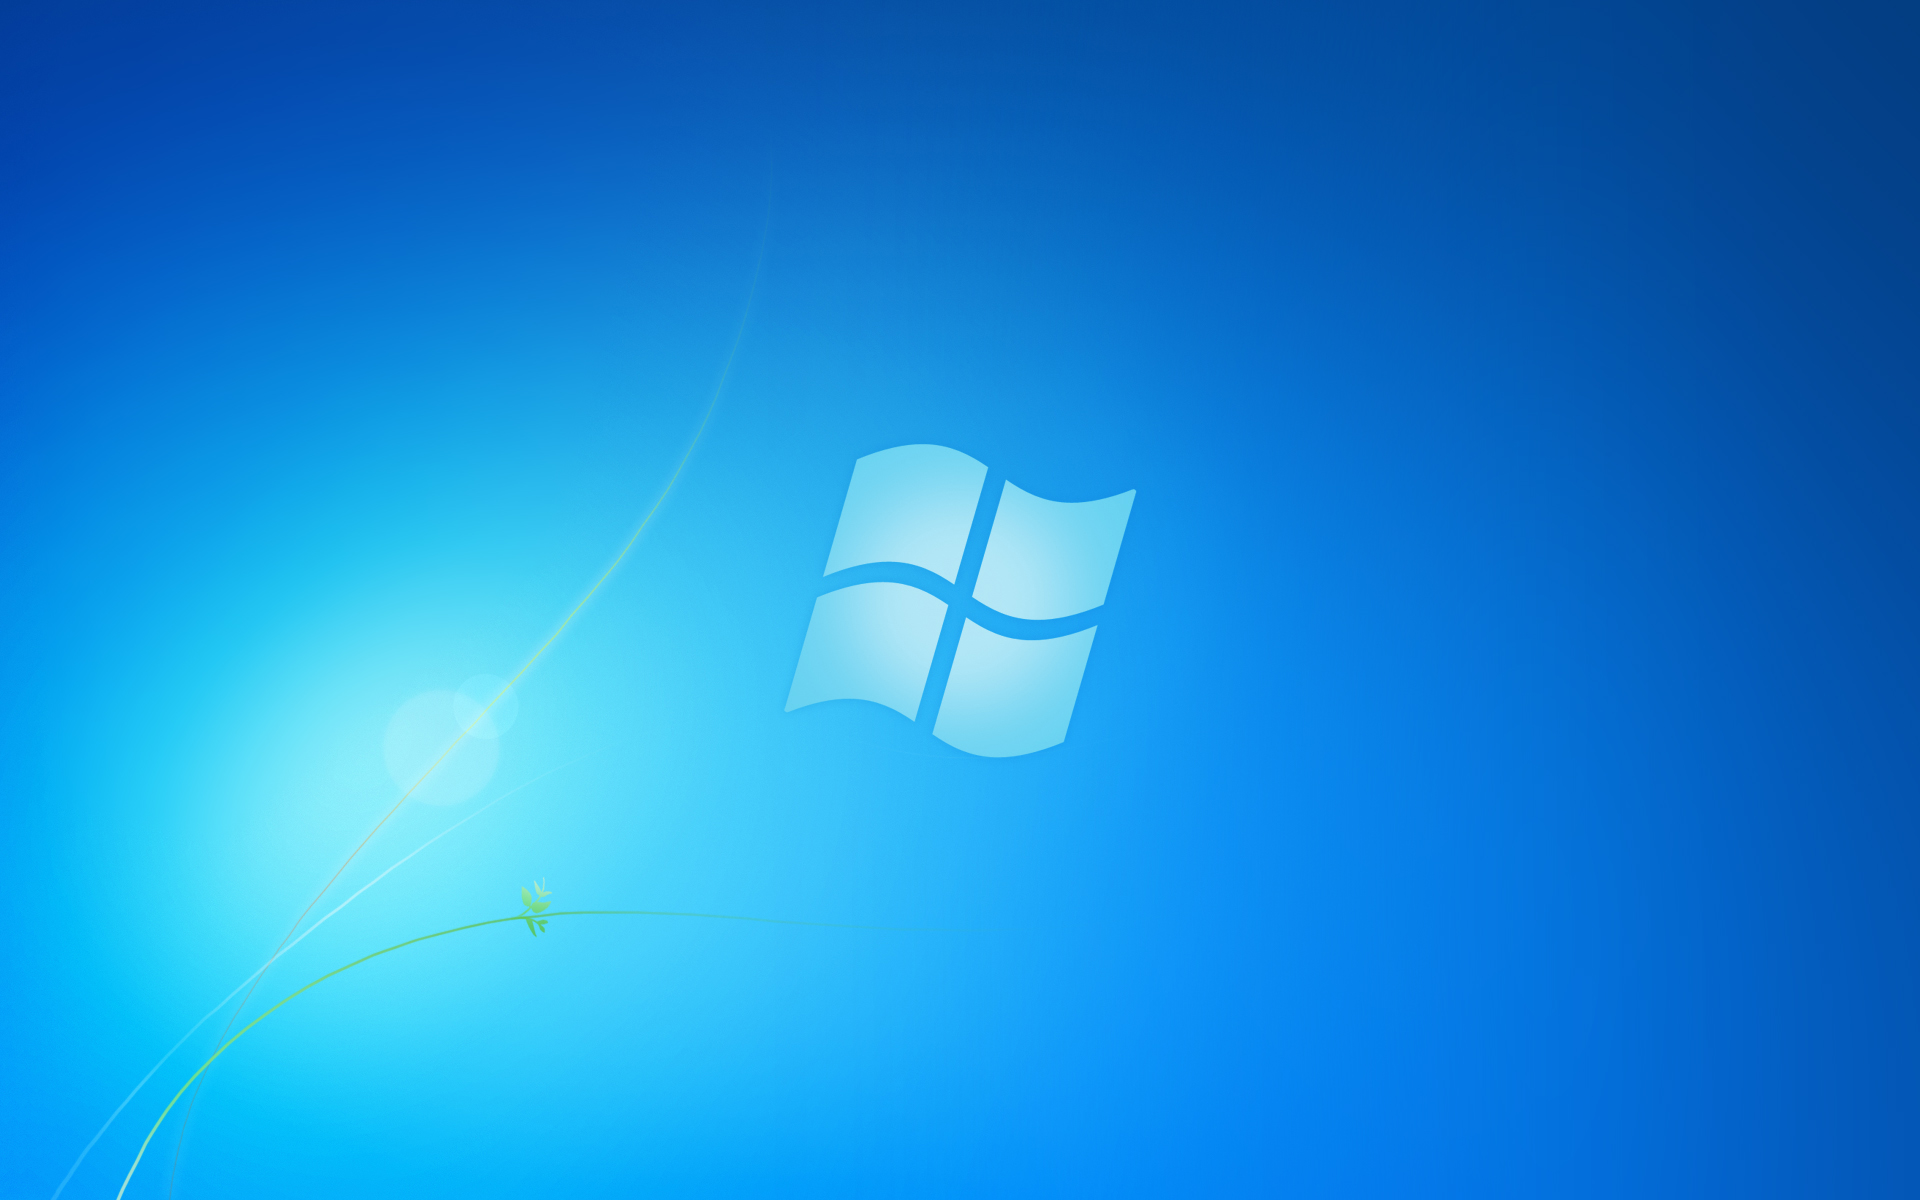 Xiaomi Redmi Note 5 Pro Wallpaper With Abstract Blue Light: Microsoft Windows Light Blue Wallpaper (1920x1200